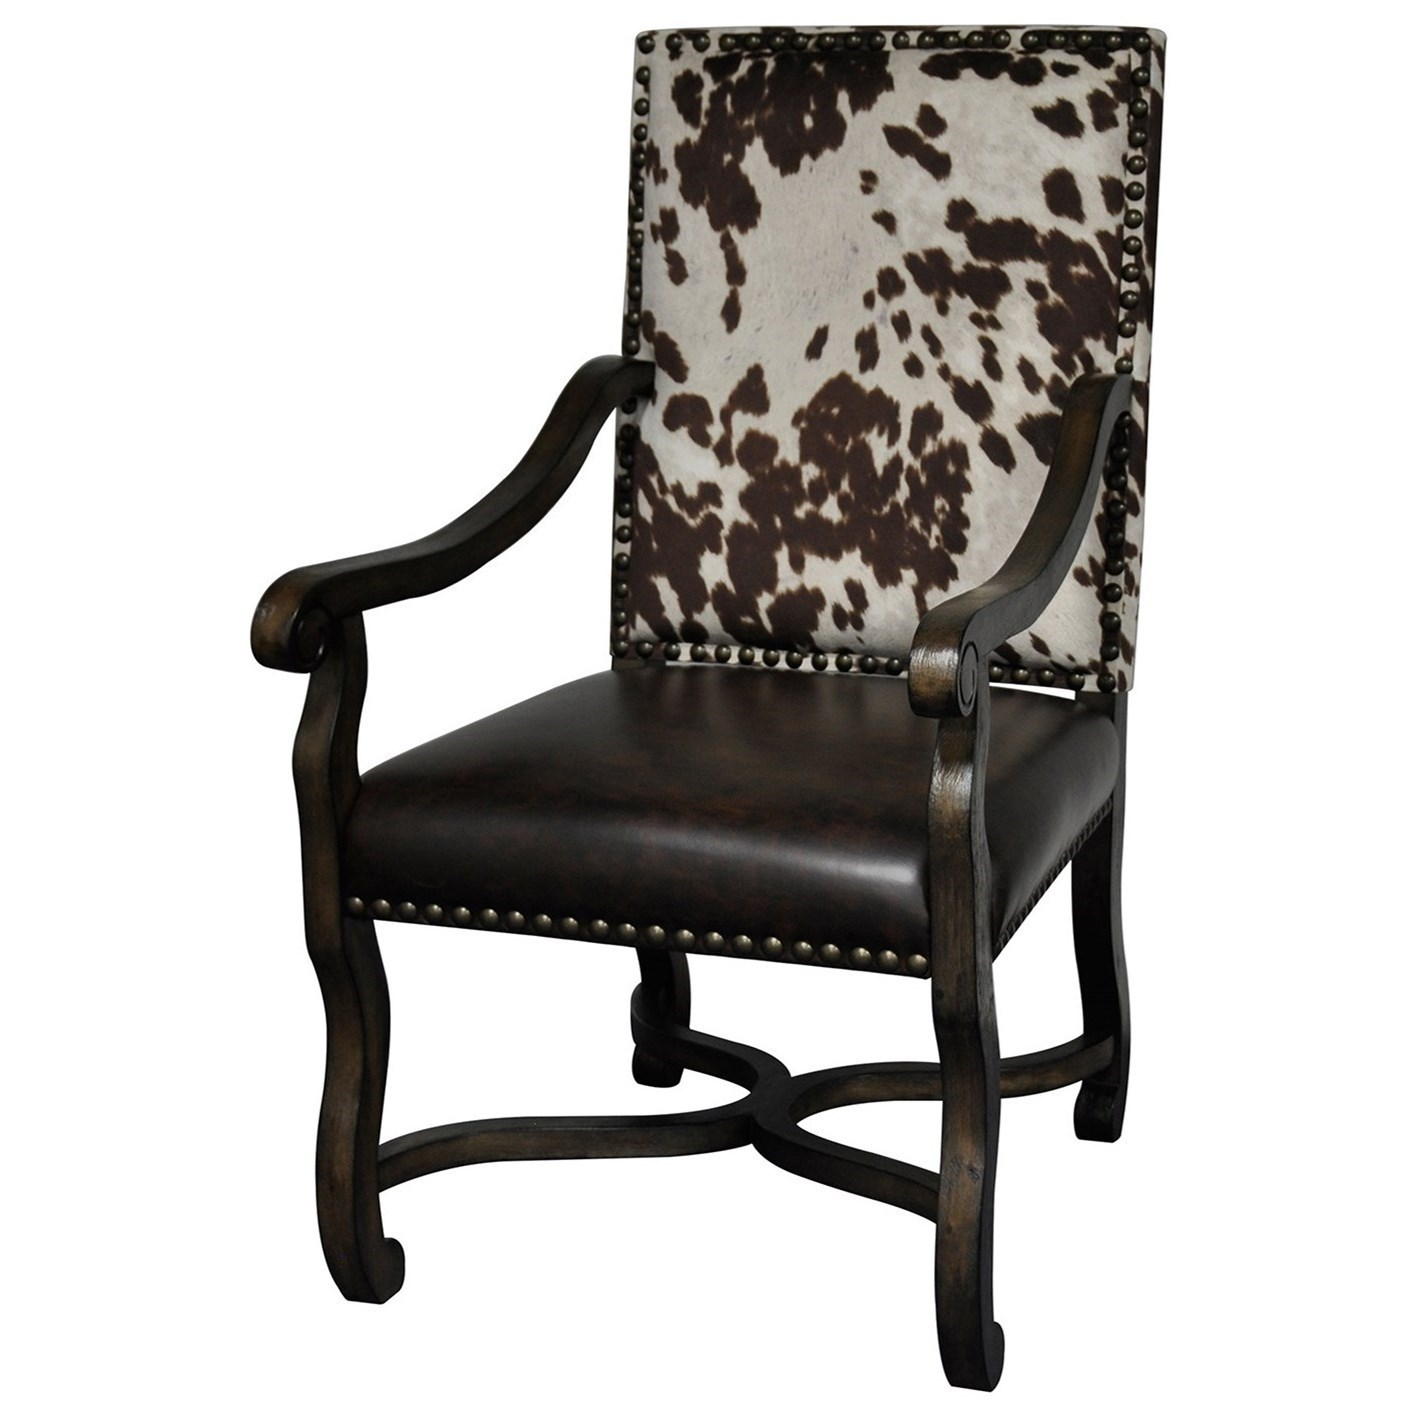 crestview collection accent furniture cvfzr1791 mesquite ranch rh greatamericanhomestore com cowhide chairs texas cowhide chairs for sale australia